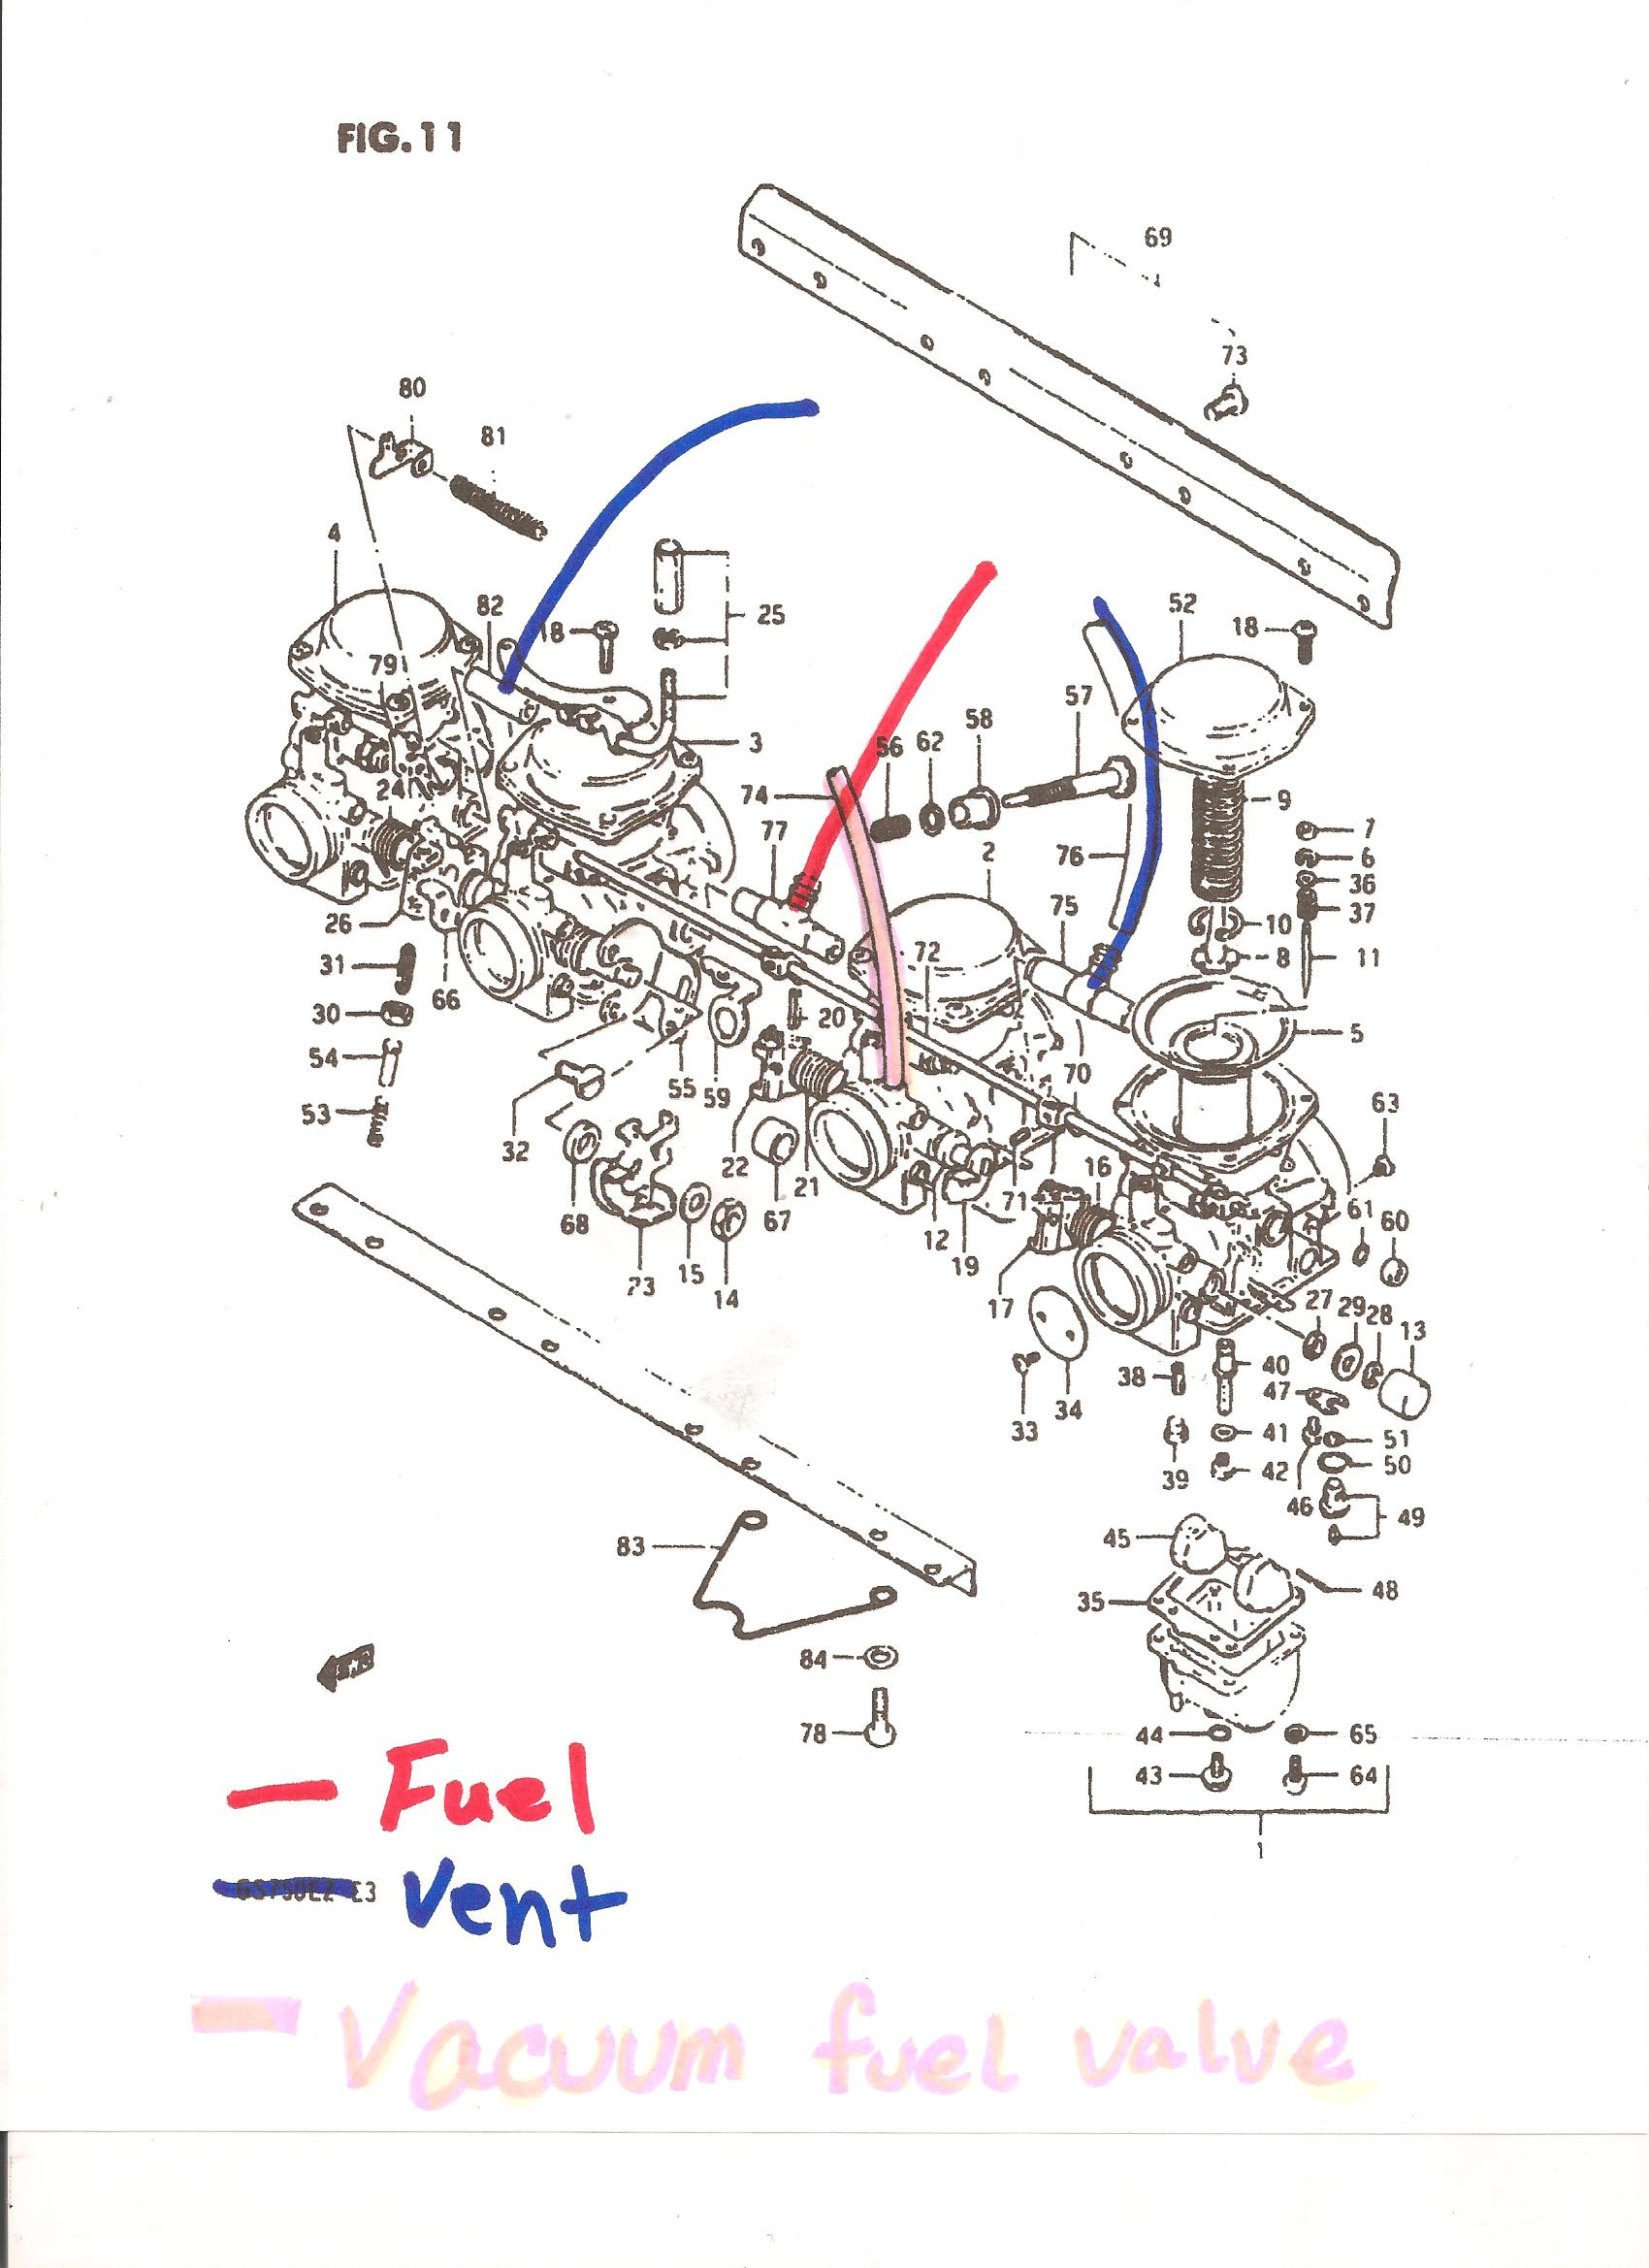 Gs 450 Carburetor Wiring Diagram And Schematics Suzuki Gs750 Ltr Kuwaitigenius Me Source I Have A 1982 750 Es Took The Carb Out For Total